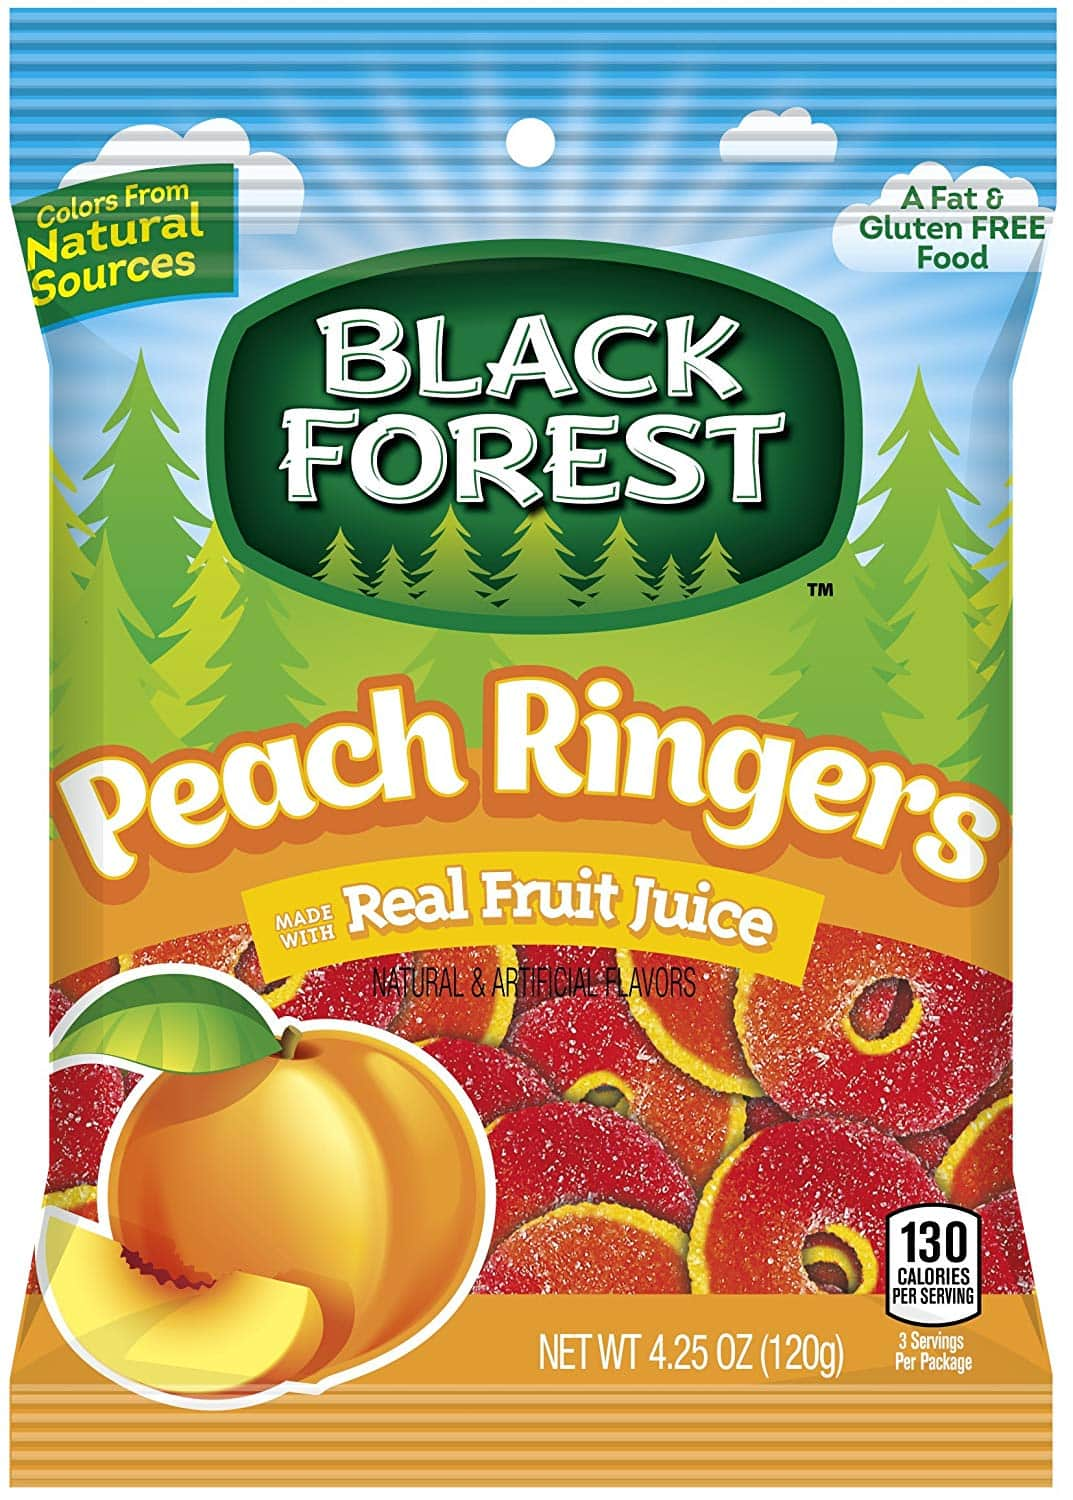 12-Count Black Forest Peach Ringers Gummy Candy (4.25 Ounce Bag) $11.20 AC w/s&s FS (93¢ Bag)